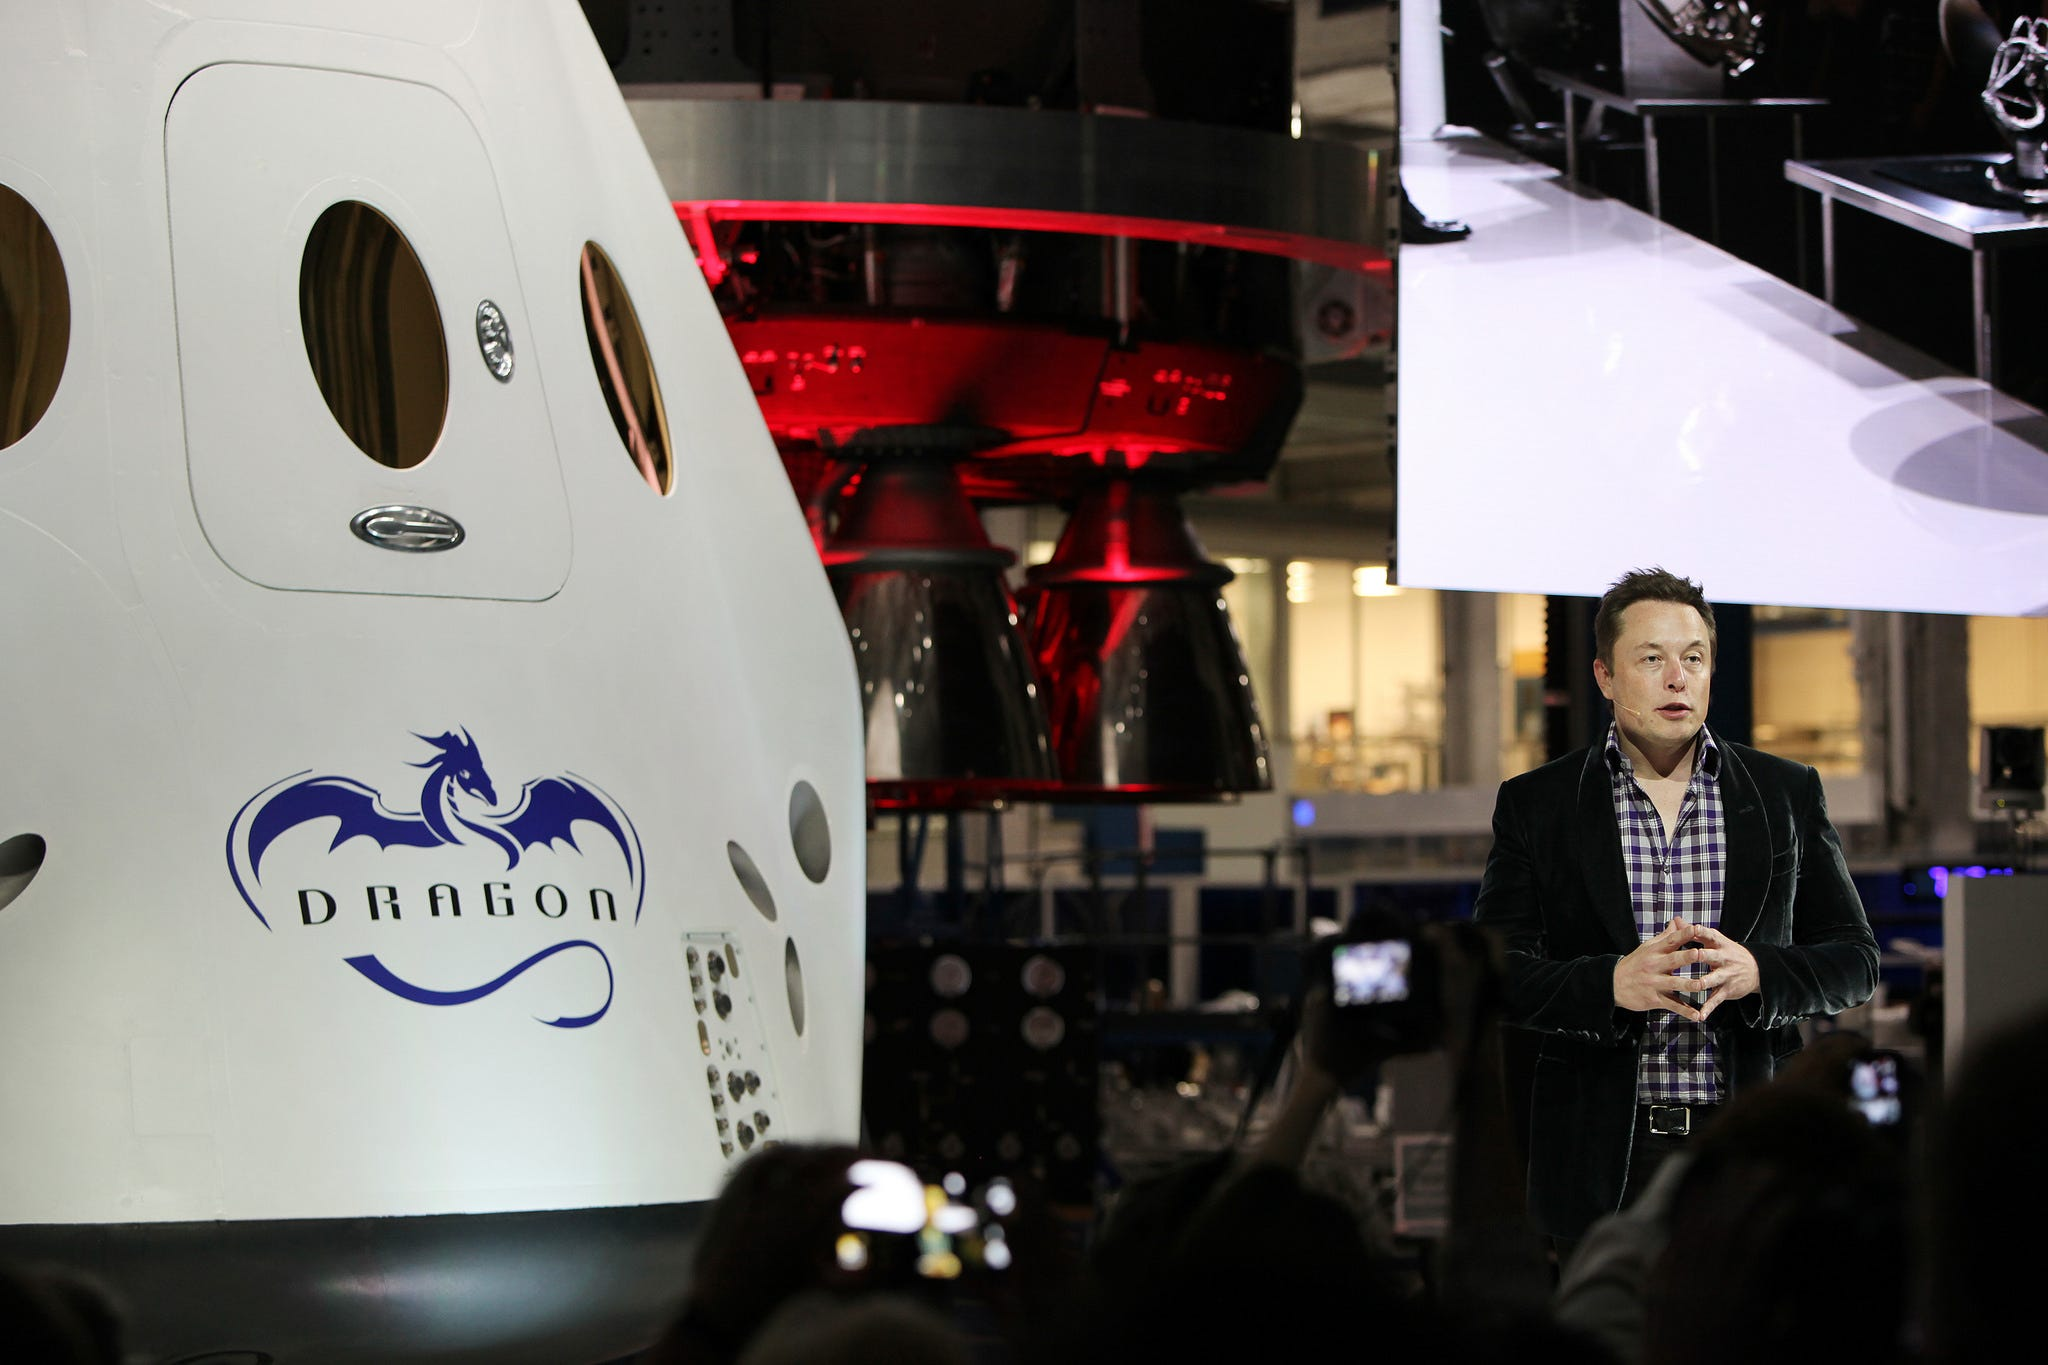 636512762748132200-spx-crew-dragon-unveil-musk-2014 SpaceX's first launch of astronauts slips to December